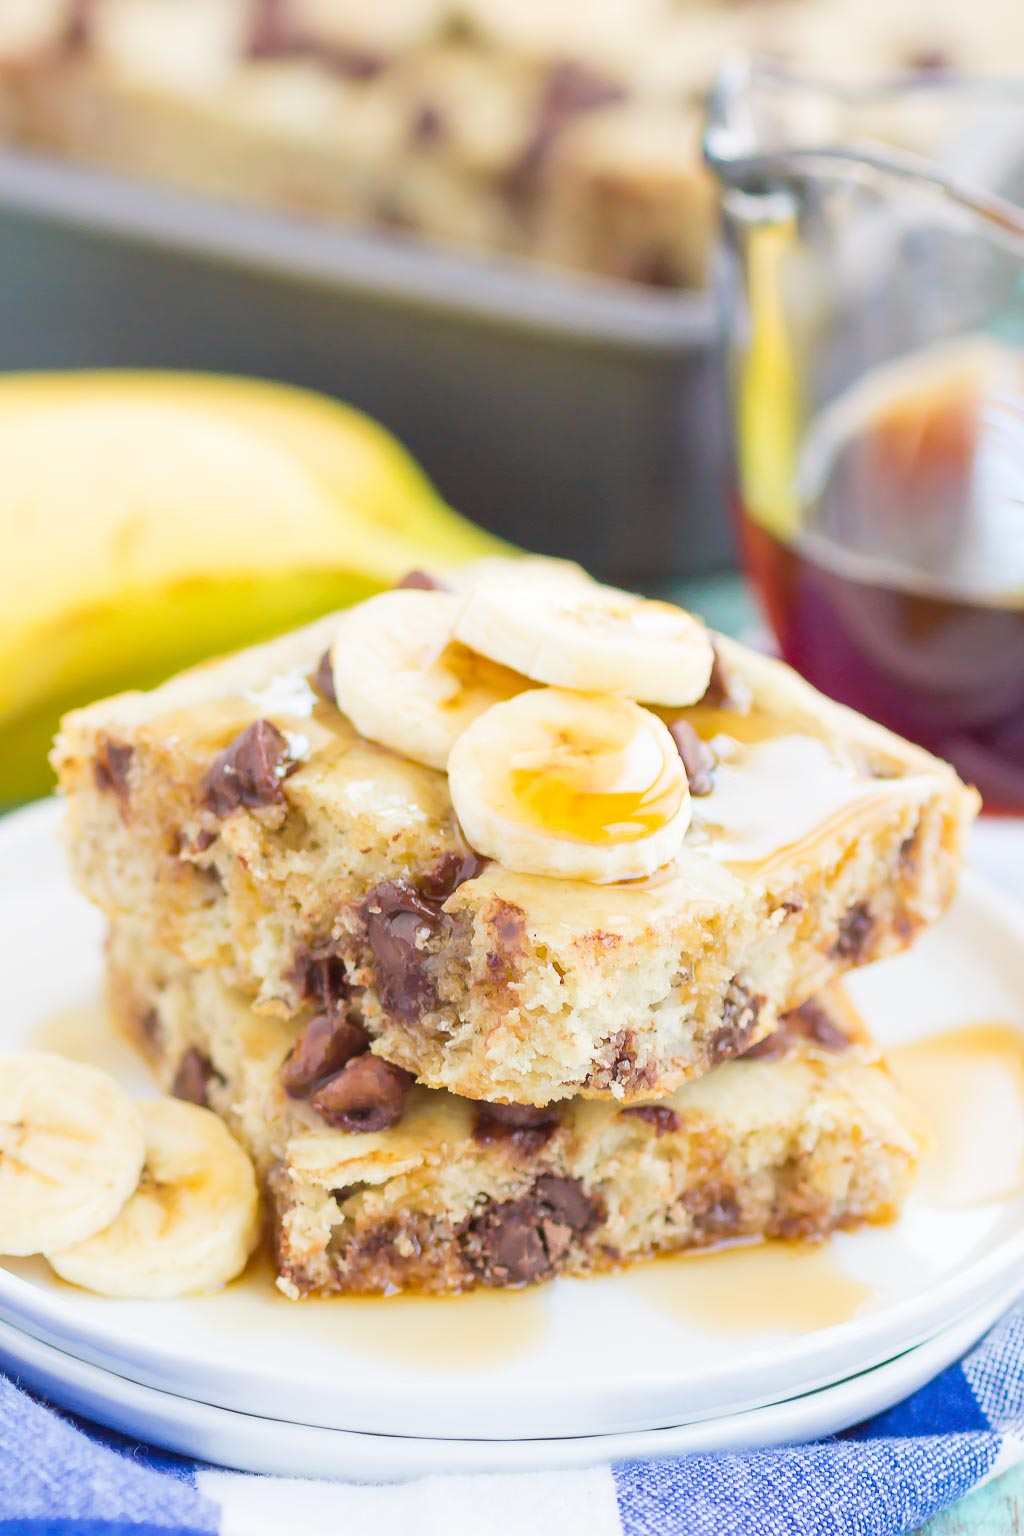 These Banana Chocolate Chip Sheet Pan Pancakes are the fastest and easiest way to make a delicious breakfast. With no flipping required and baked on a sheet pan, you can have these pancakes ready for a large crowd in no time. Freezer-friendly and ready ahead of time, your breakfast never sounded better!